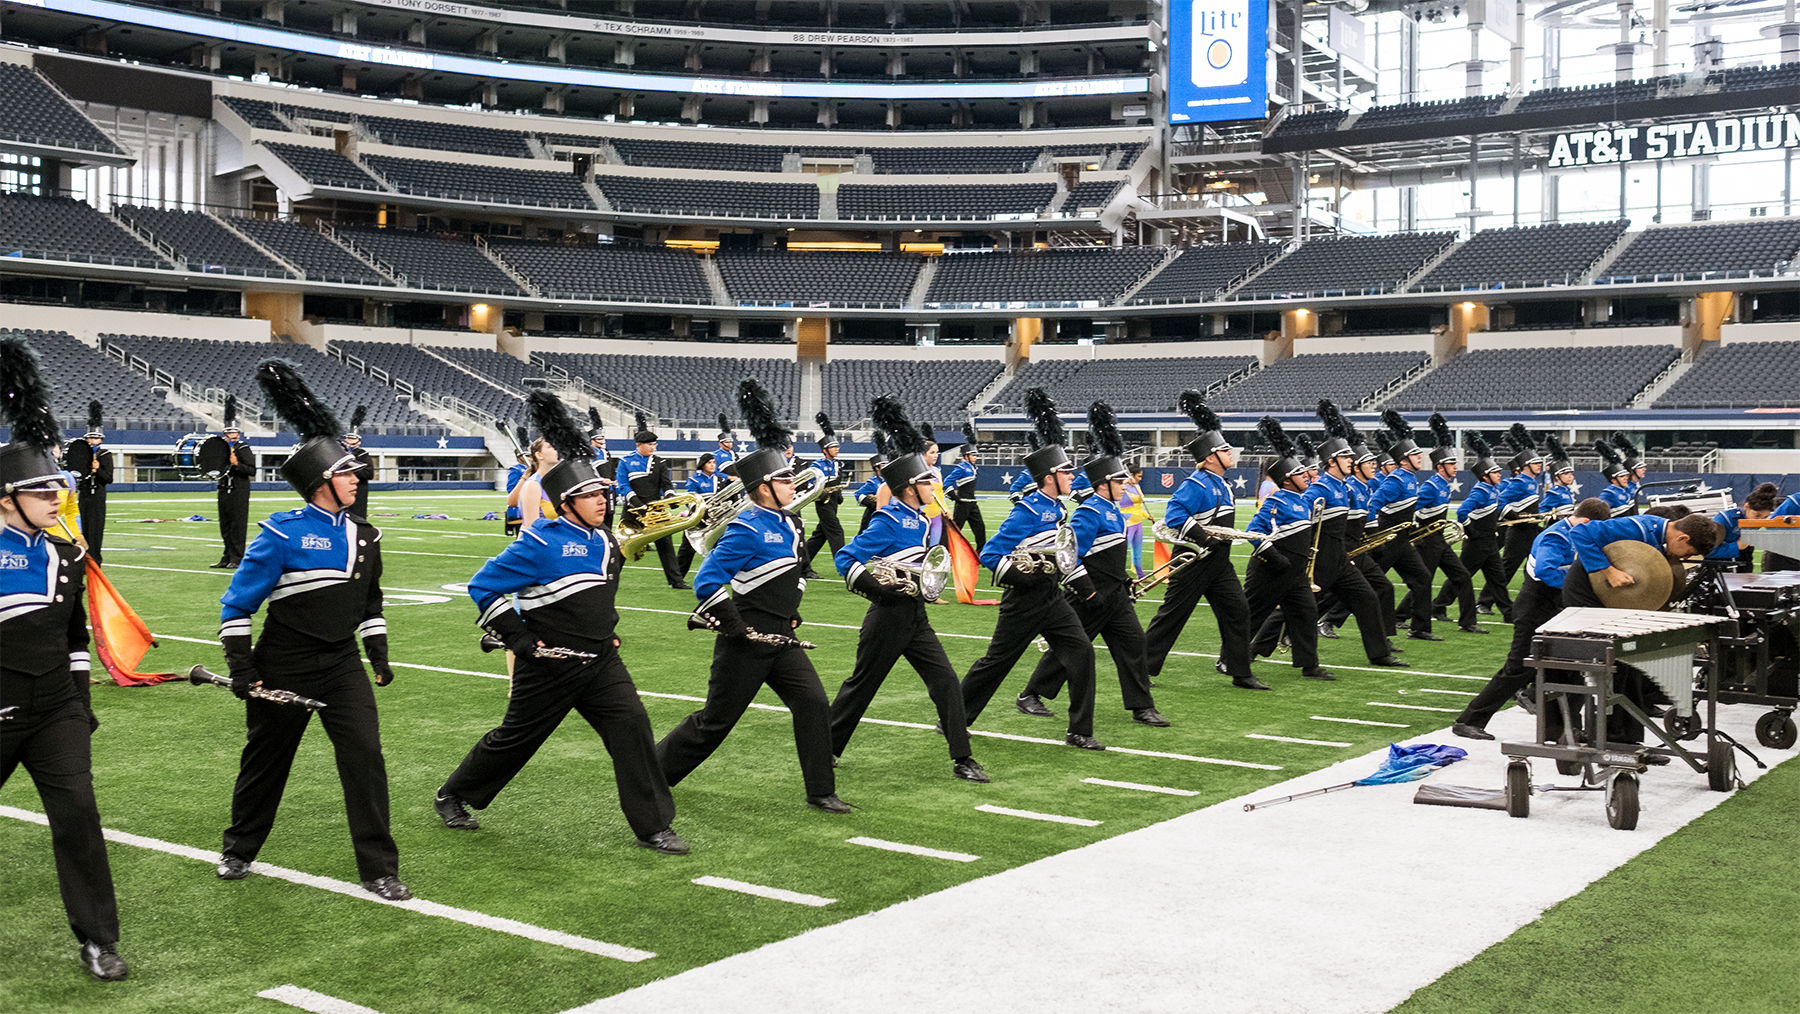 Marching Band at AT&T Stadium (157 of 208).png